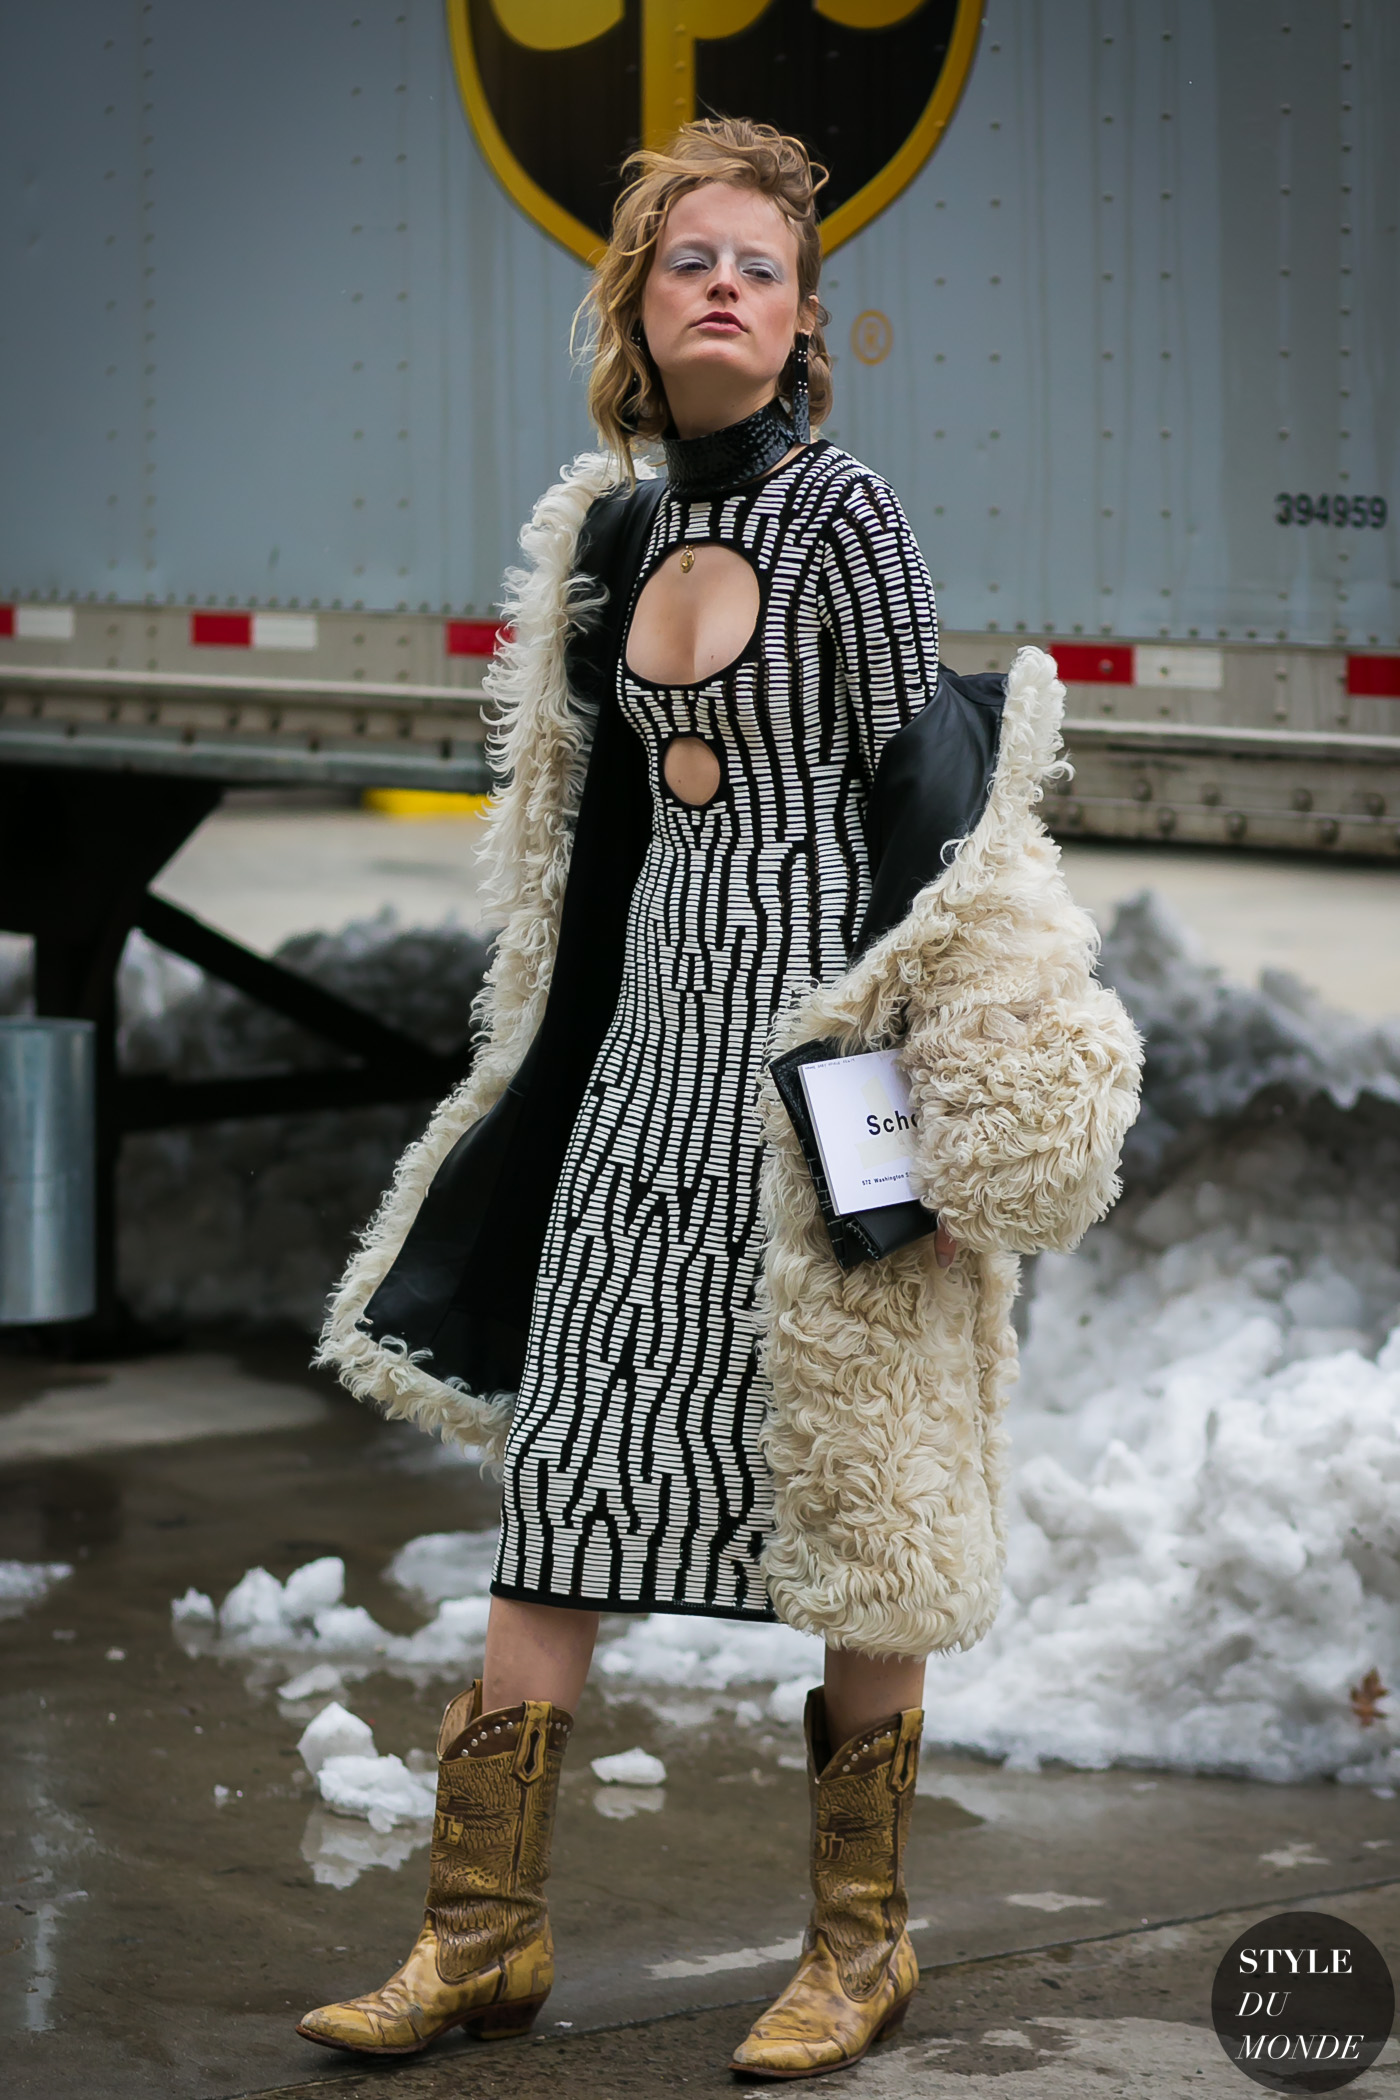 Hanne Gaby Odiele by STYLEDUMONDE Street Style Fashion Photography0E2A5836